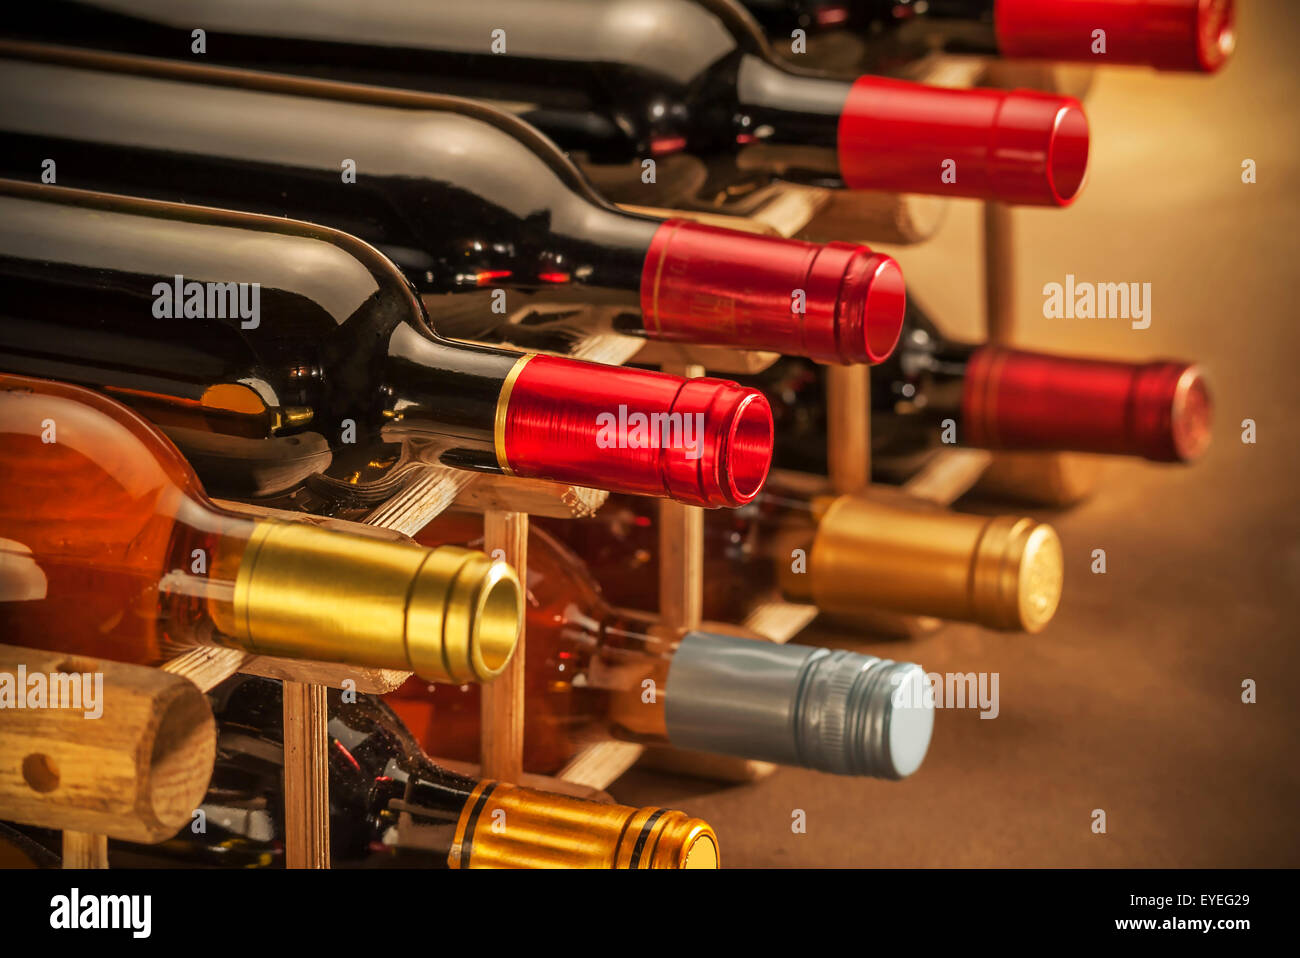 Wine bottles stacked on wooden racks shot with limited depth of field Stock Photo